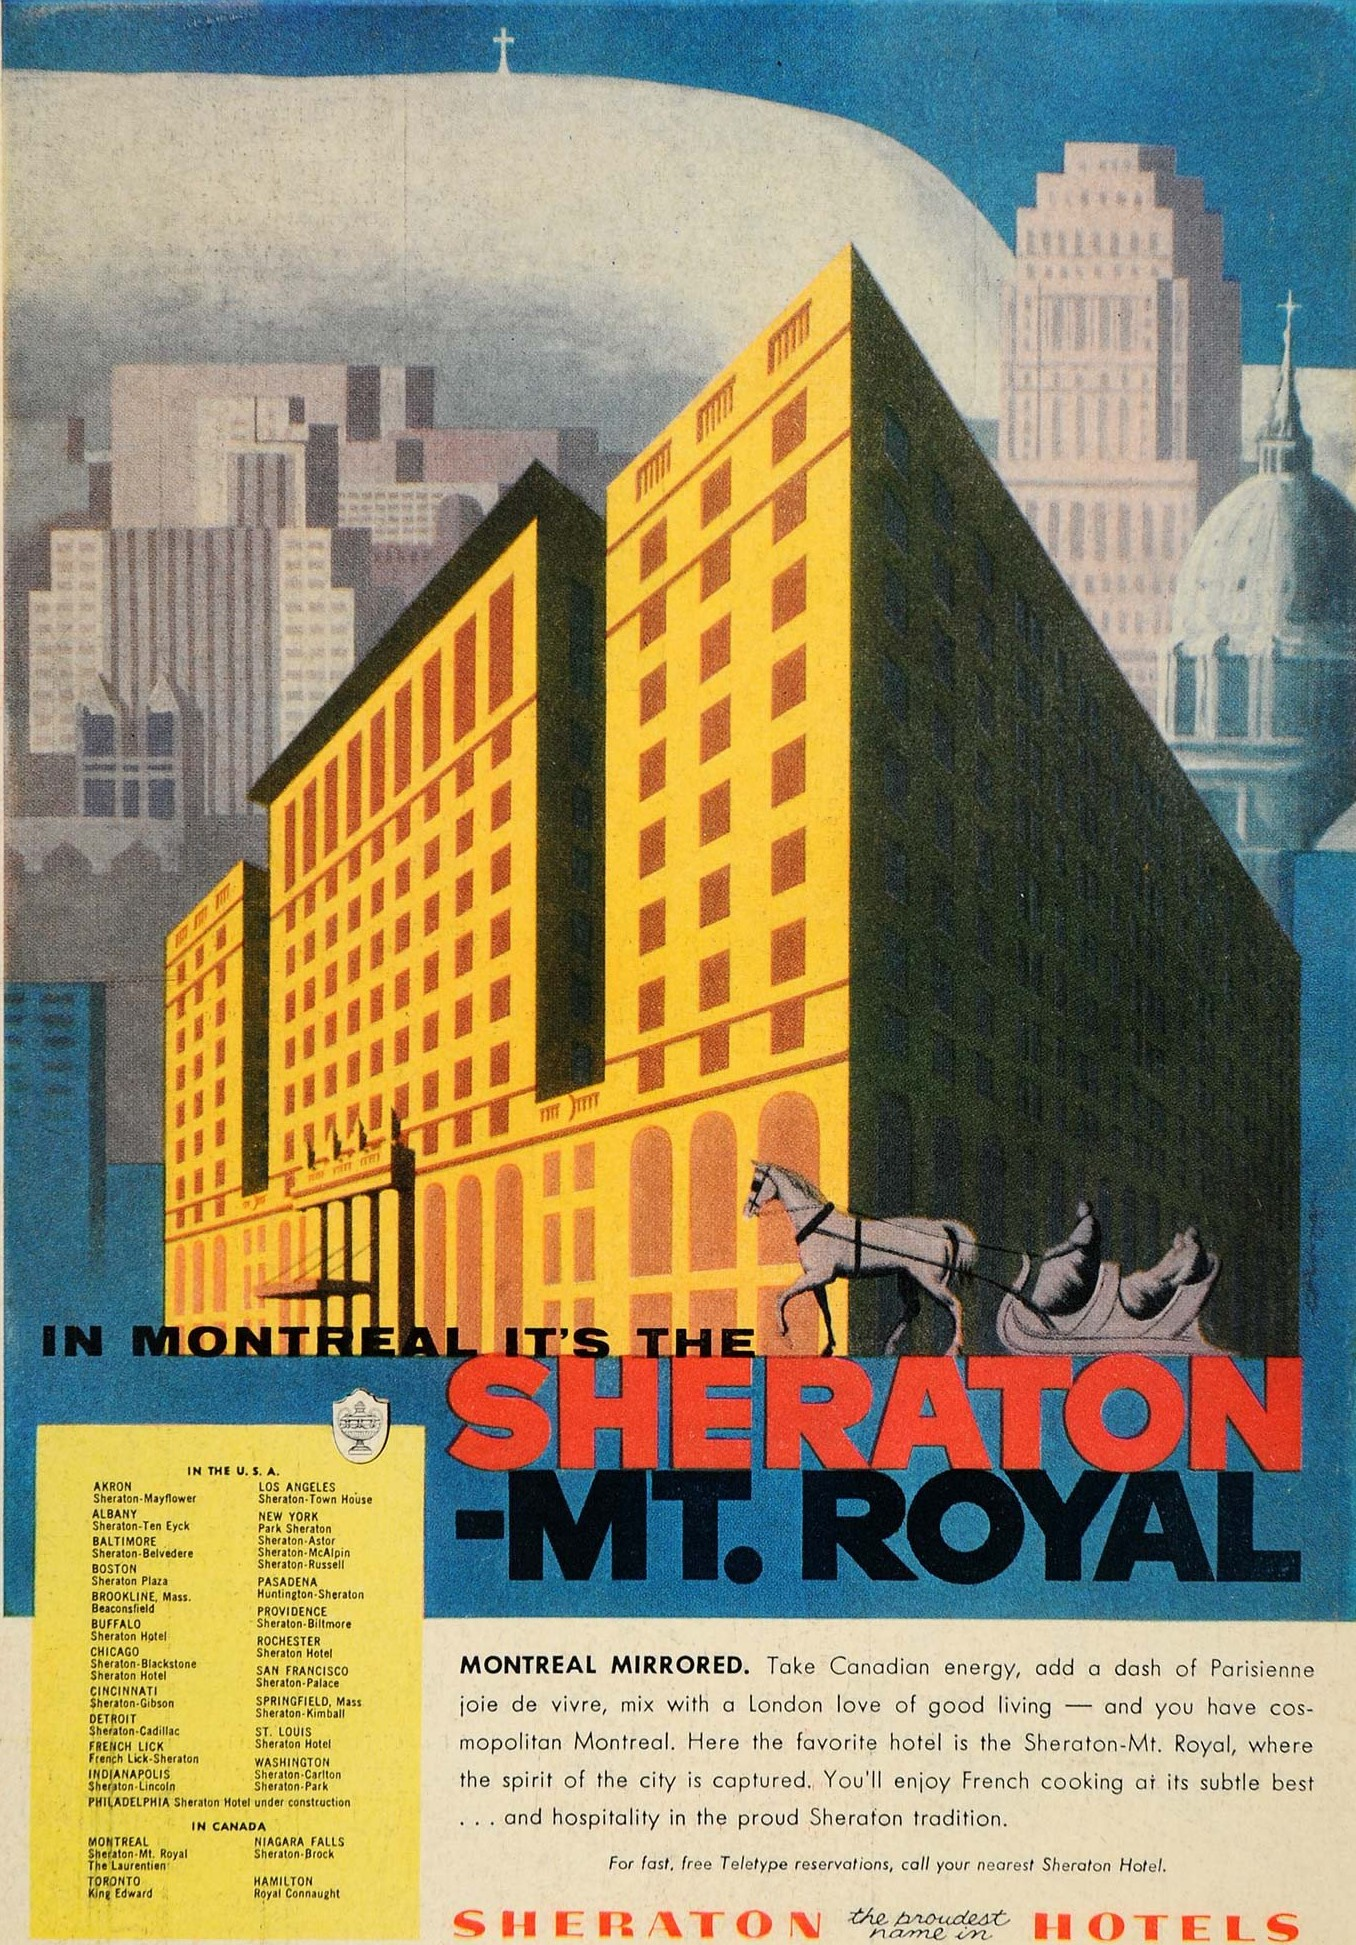 1956 - The Sheraton Mt. Royal in Montreal